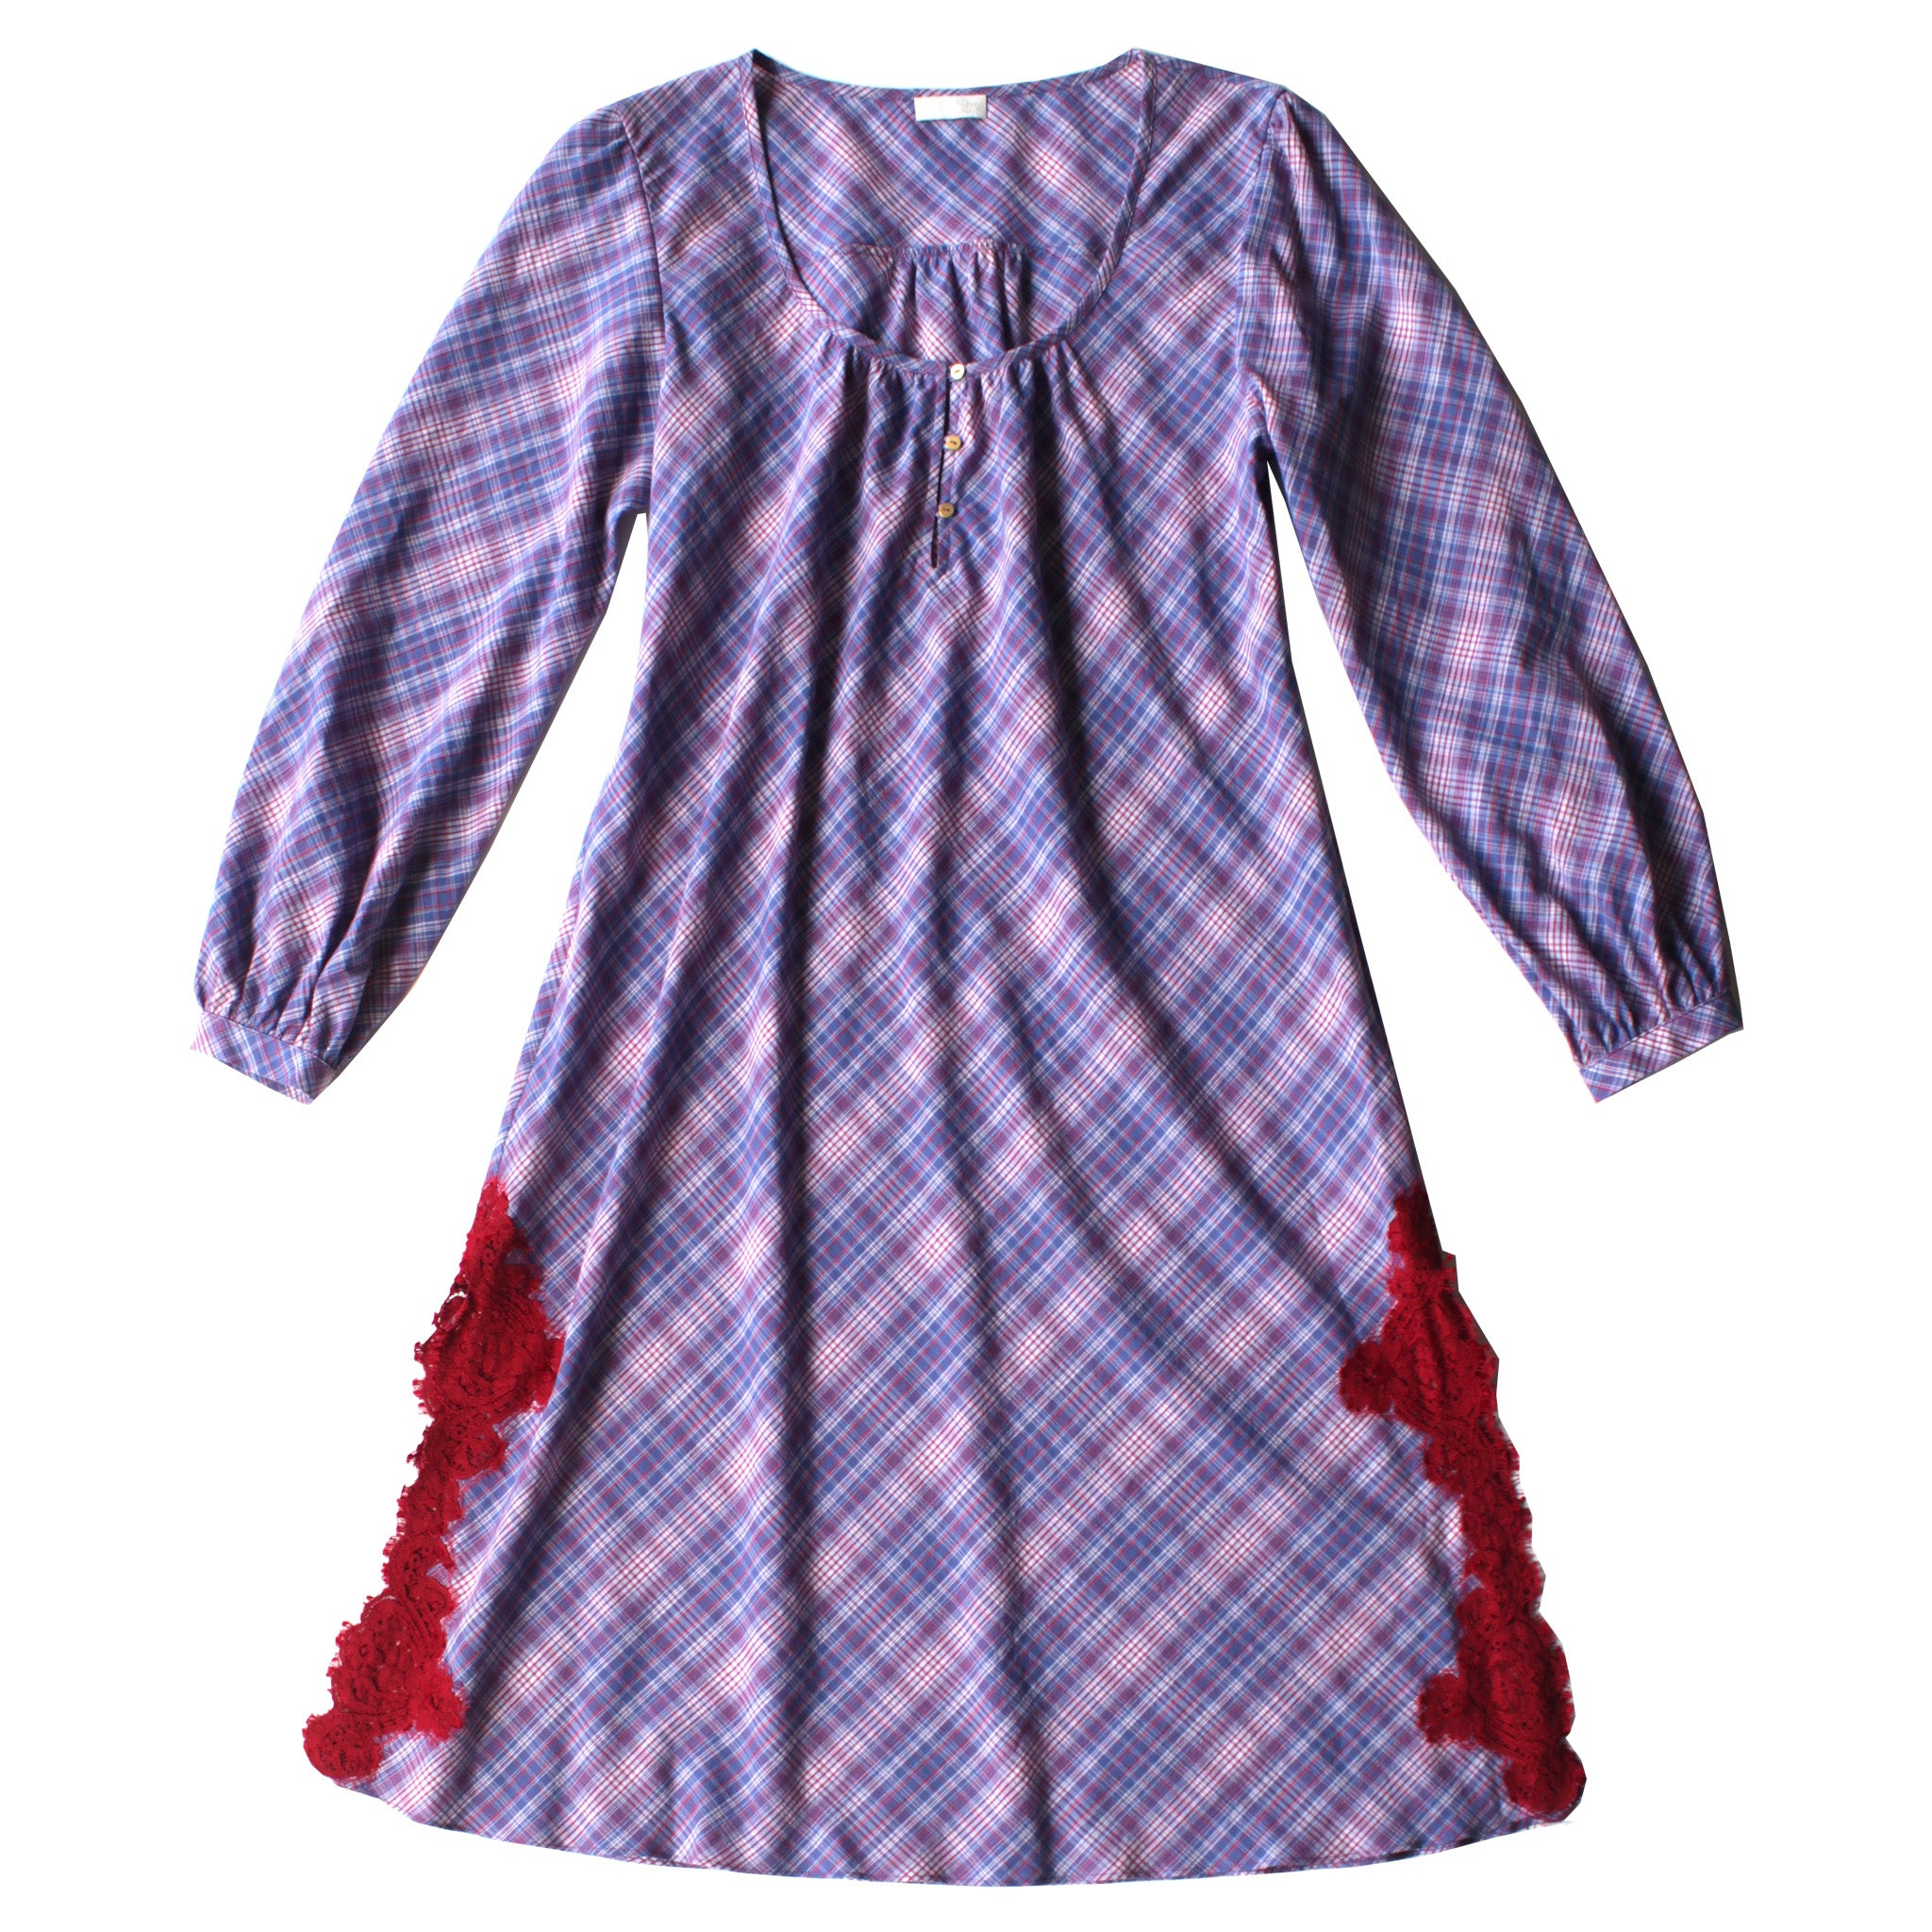 The Bast Sleep Shirt in Purple Plaid Italian Striped Cotton